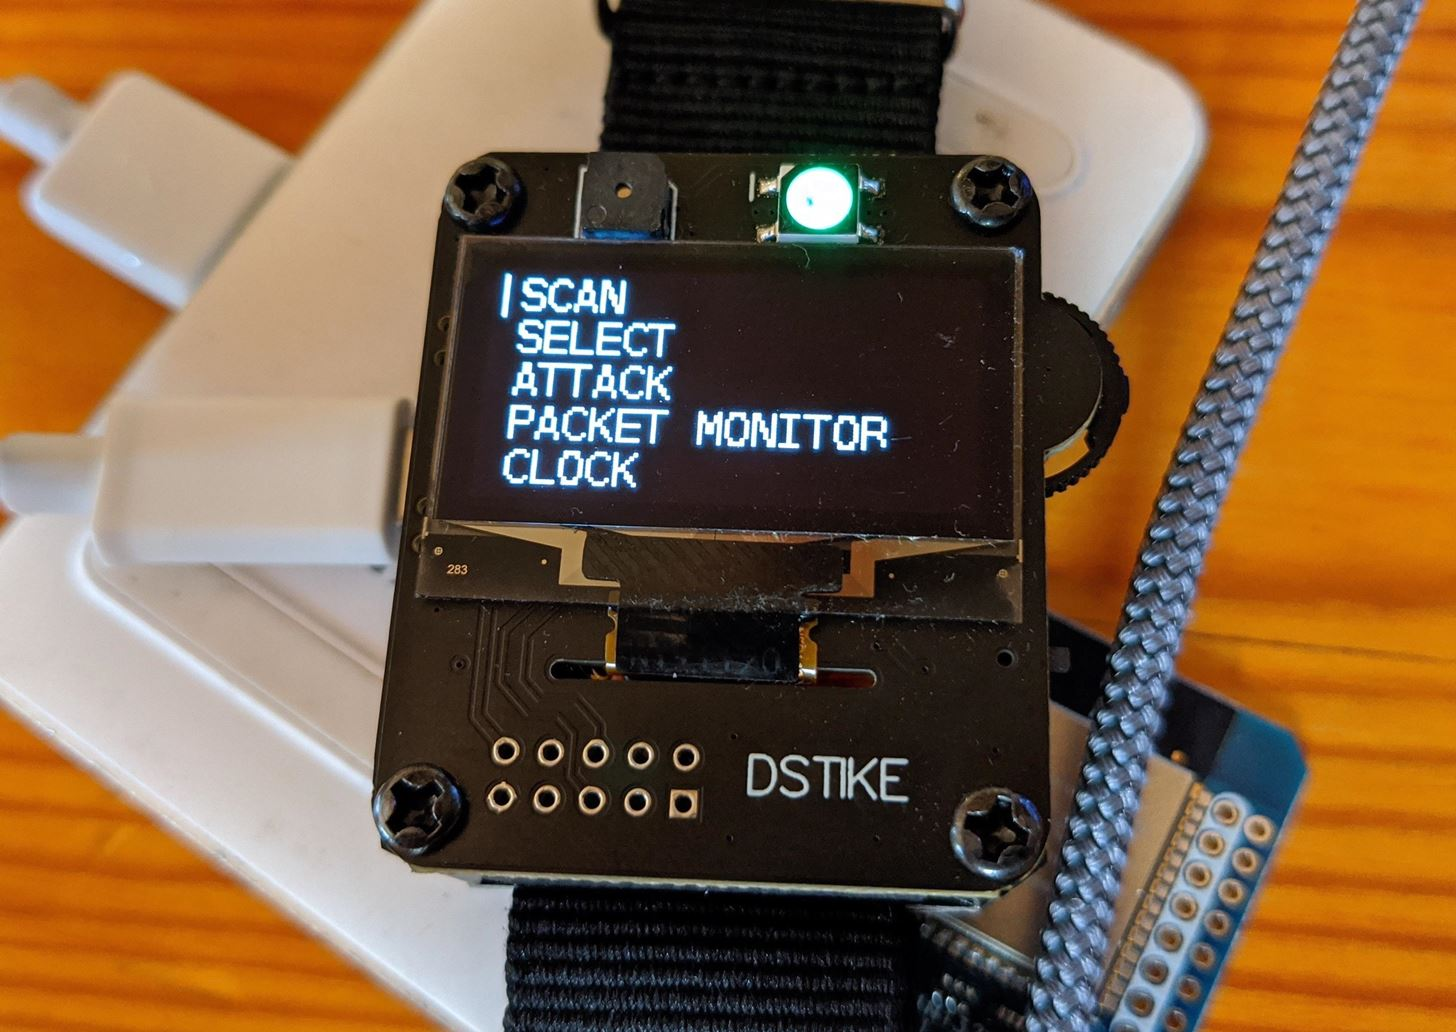 Hack Networks & Devices Right from Your Wrist with the Wi-Fi Deauther Watch